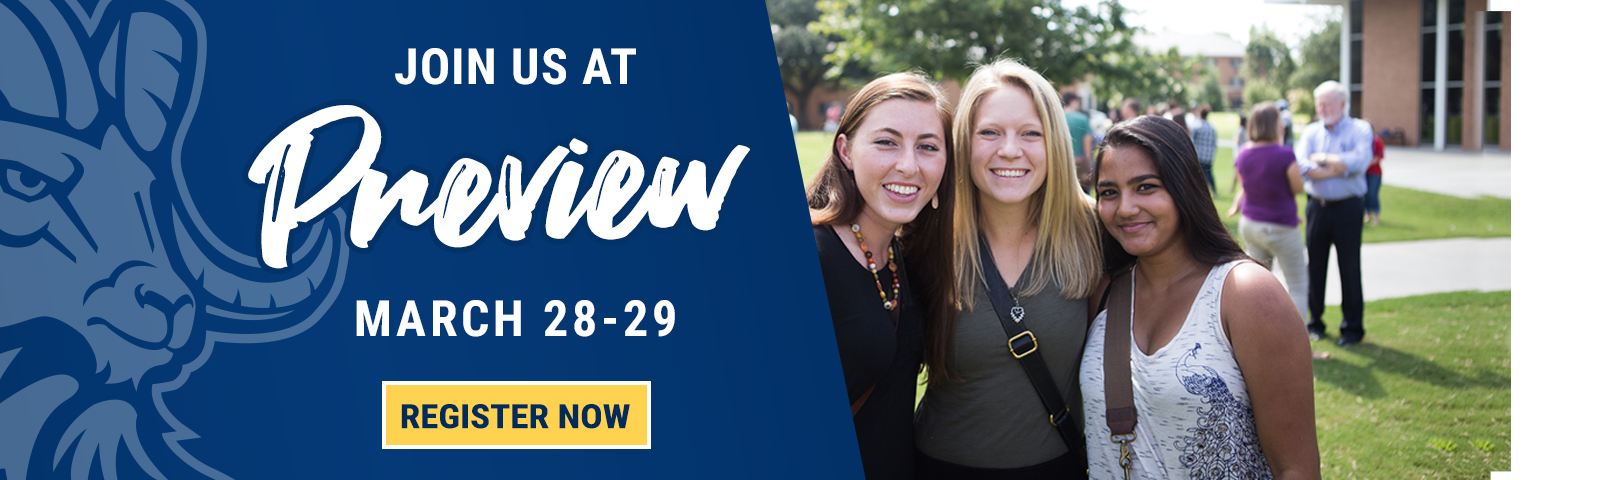 Preview Day at CIU is March 28-19, 2019